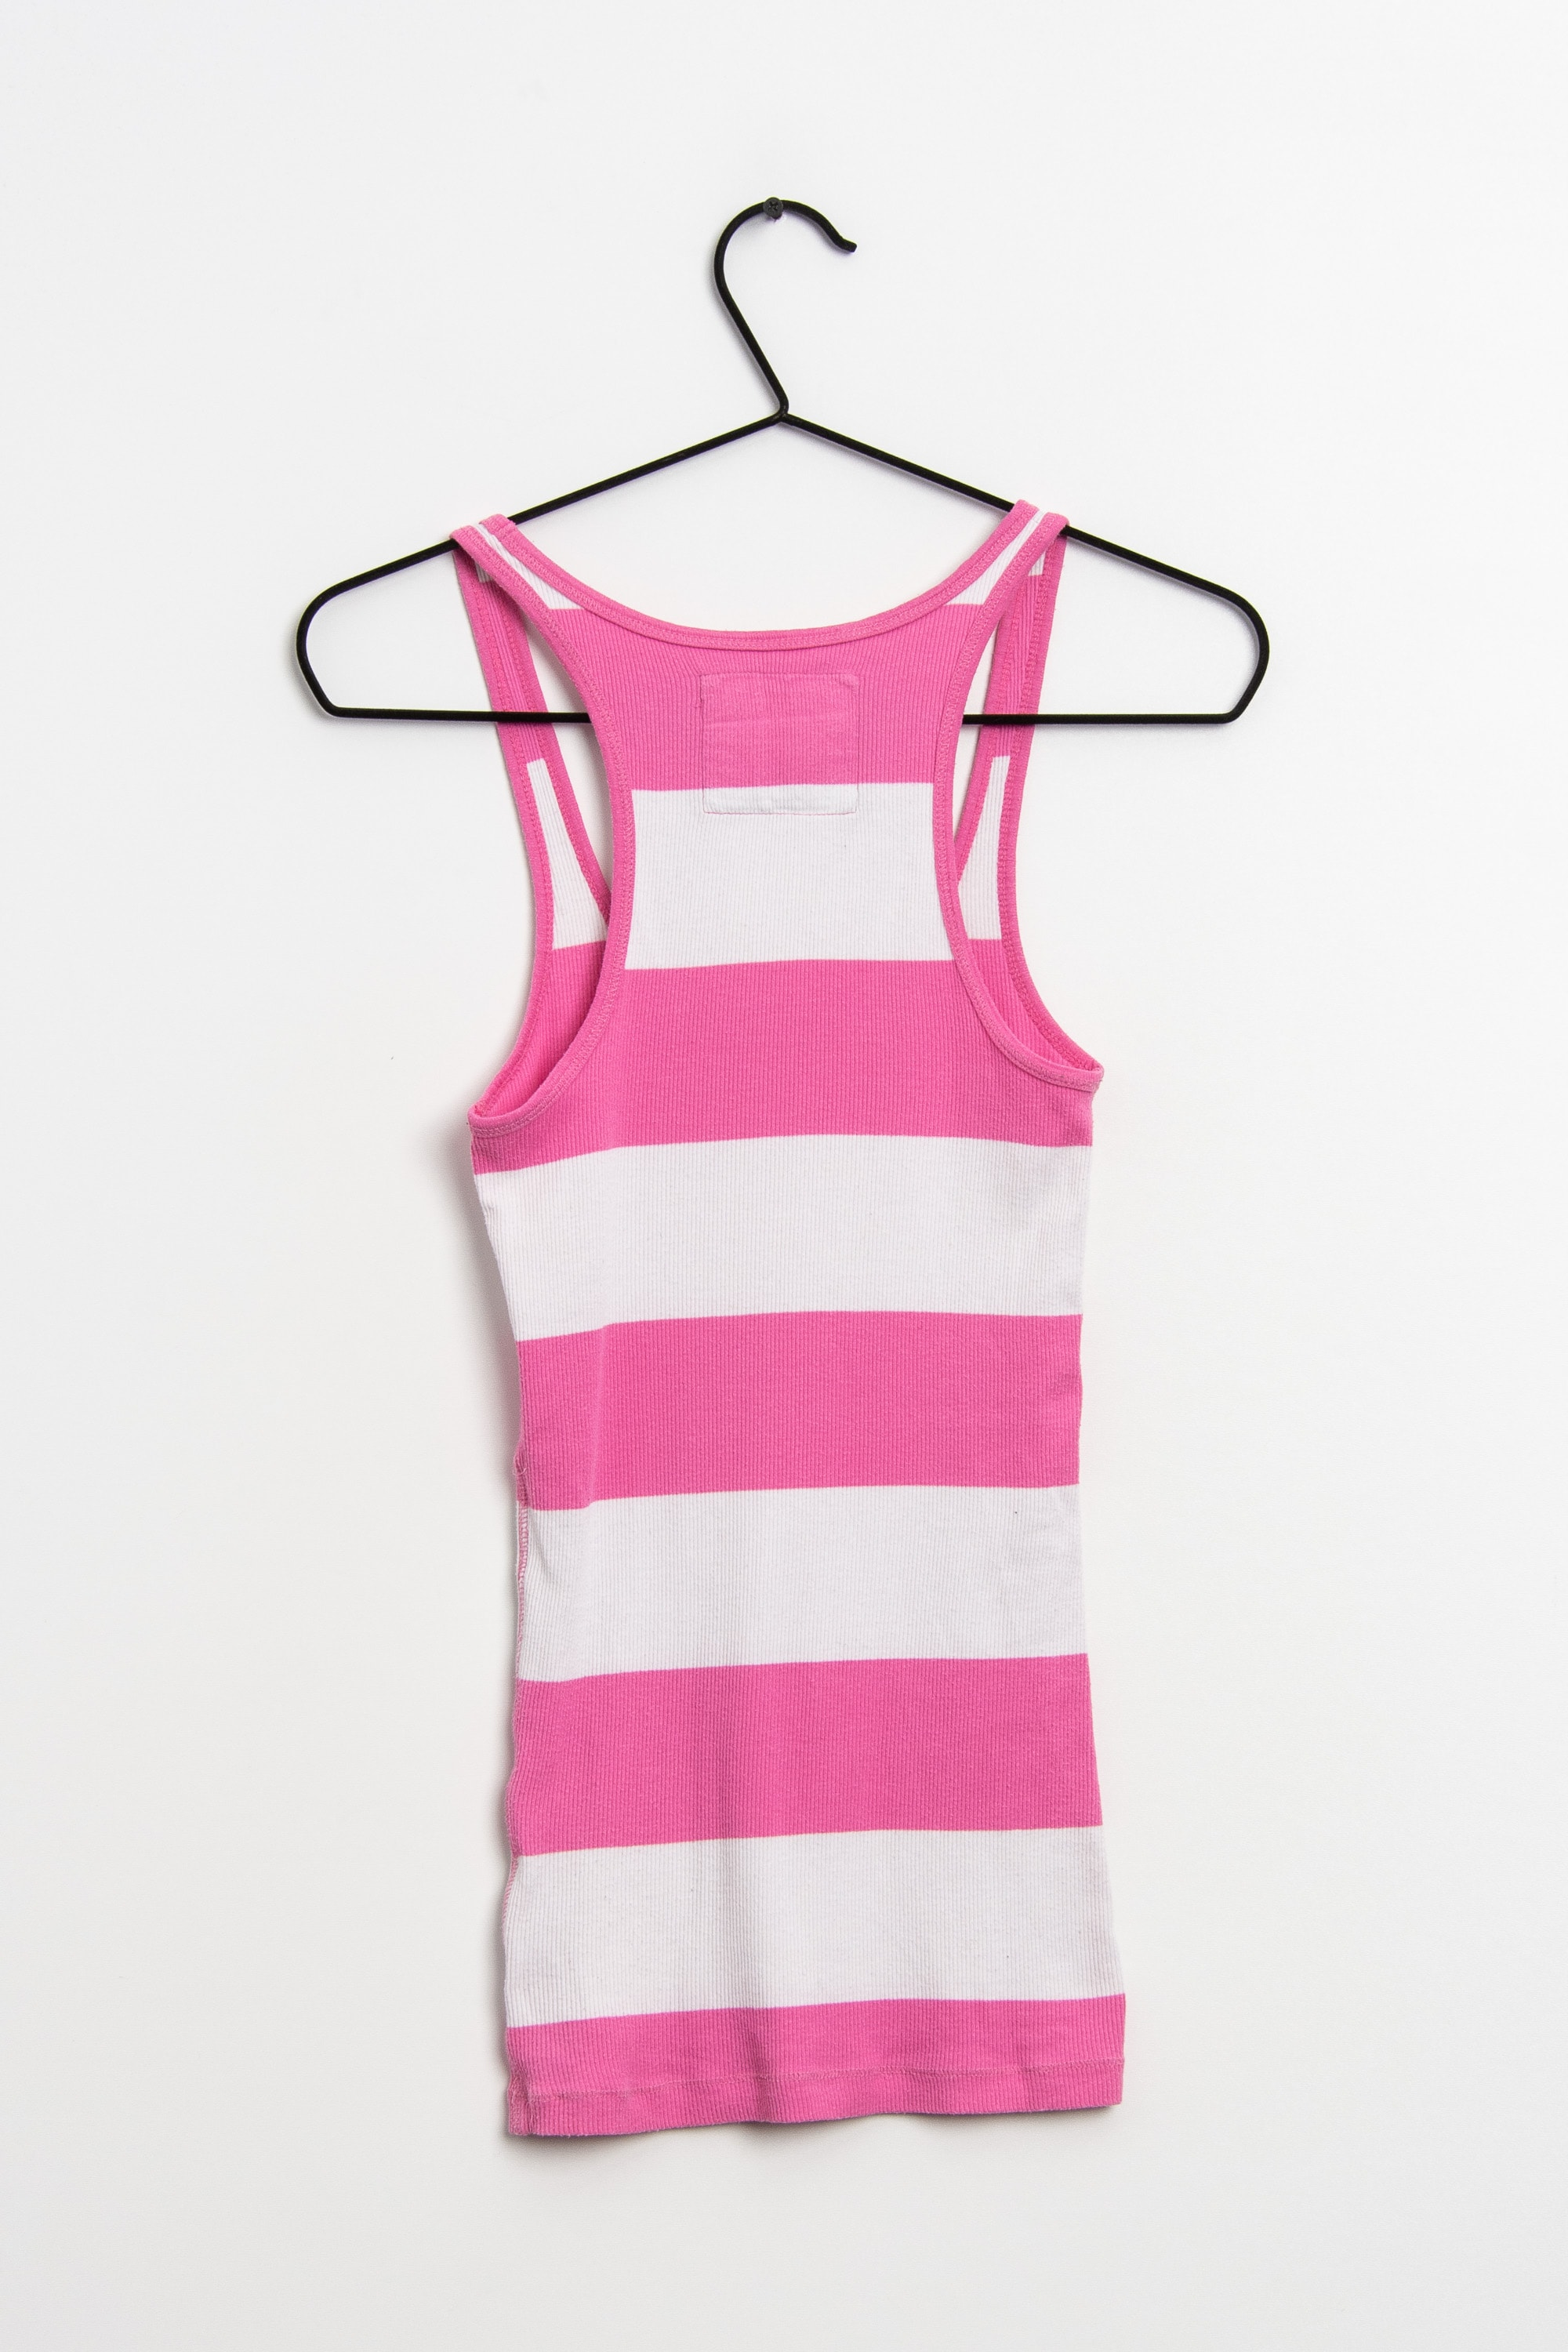 Abercrombie & Fitch Top Pink Gr.M